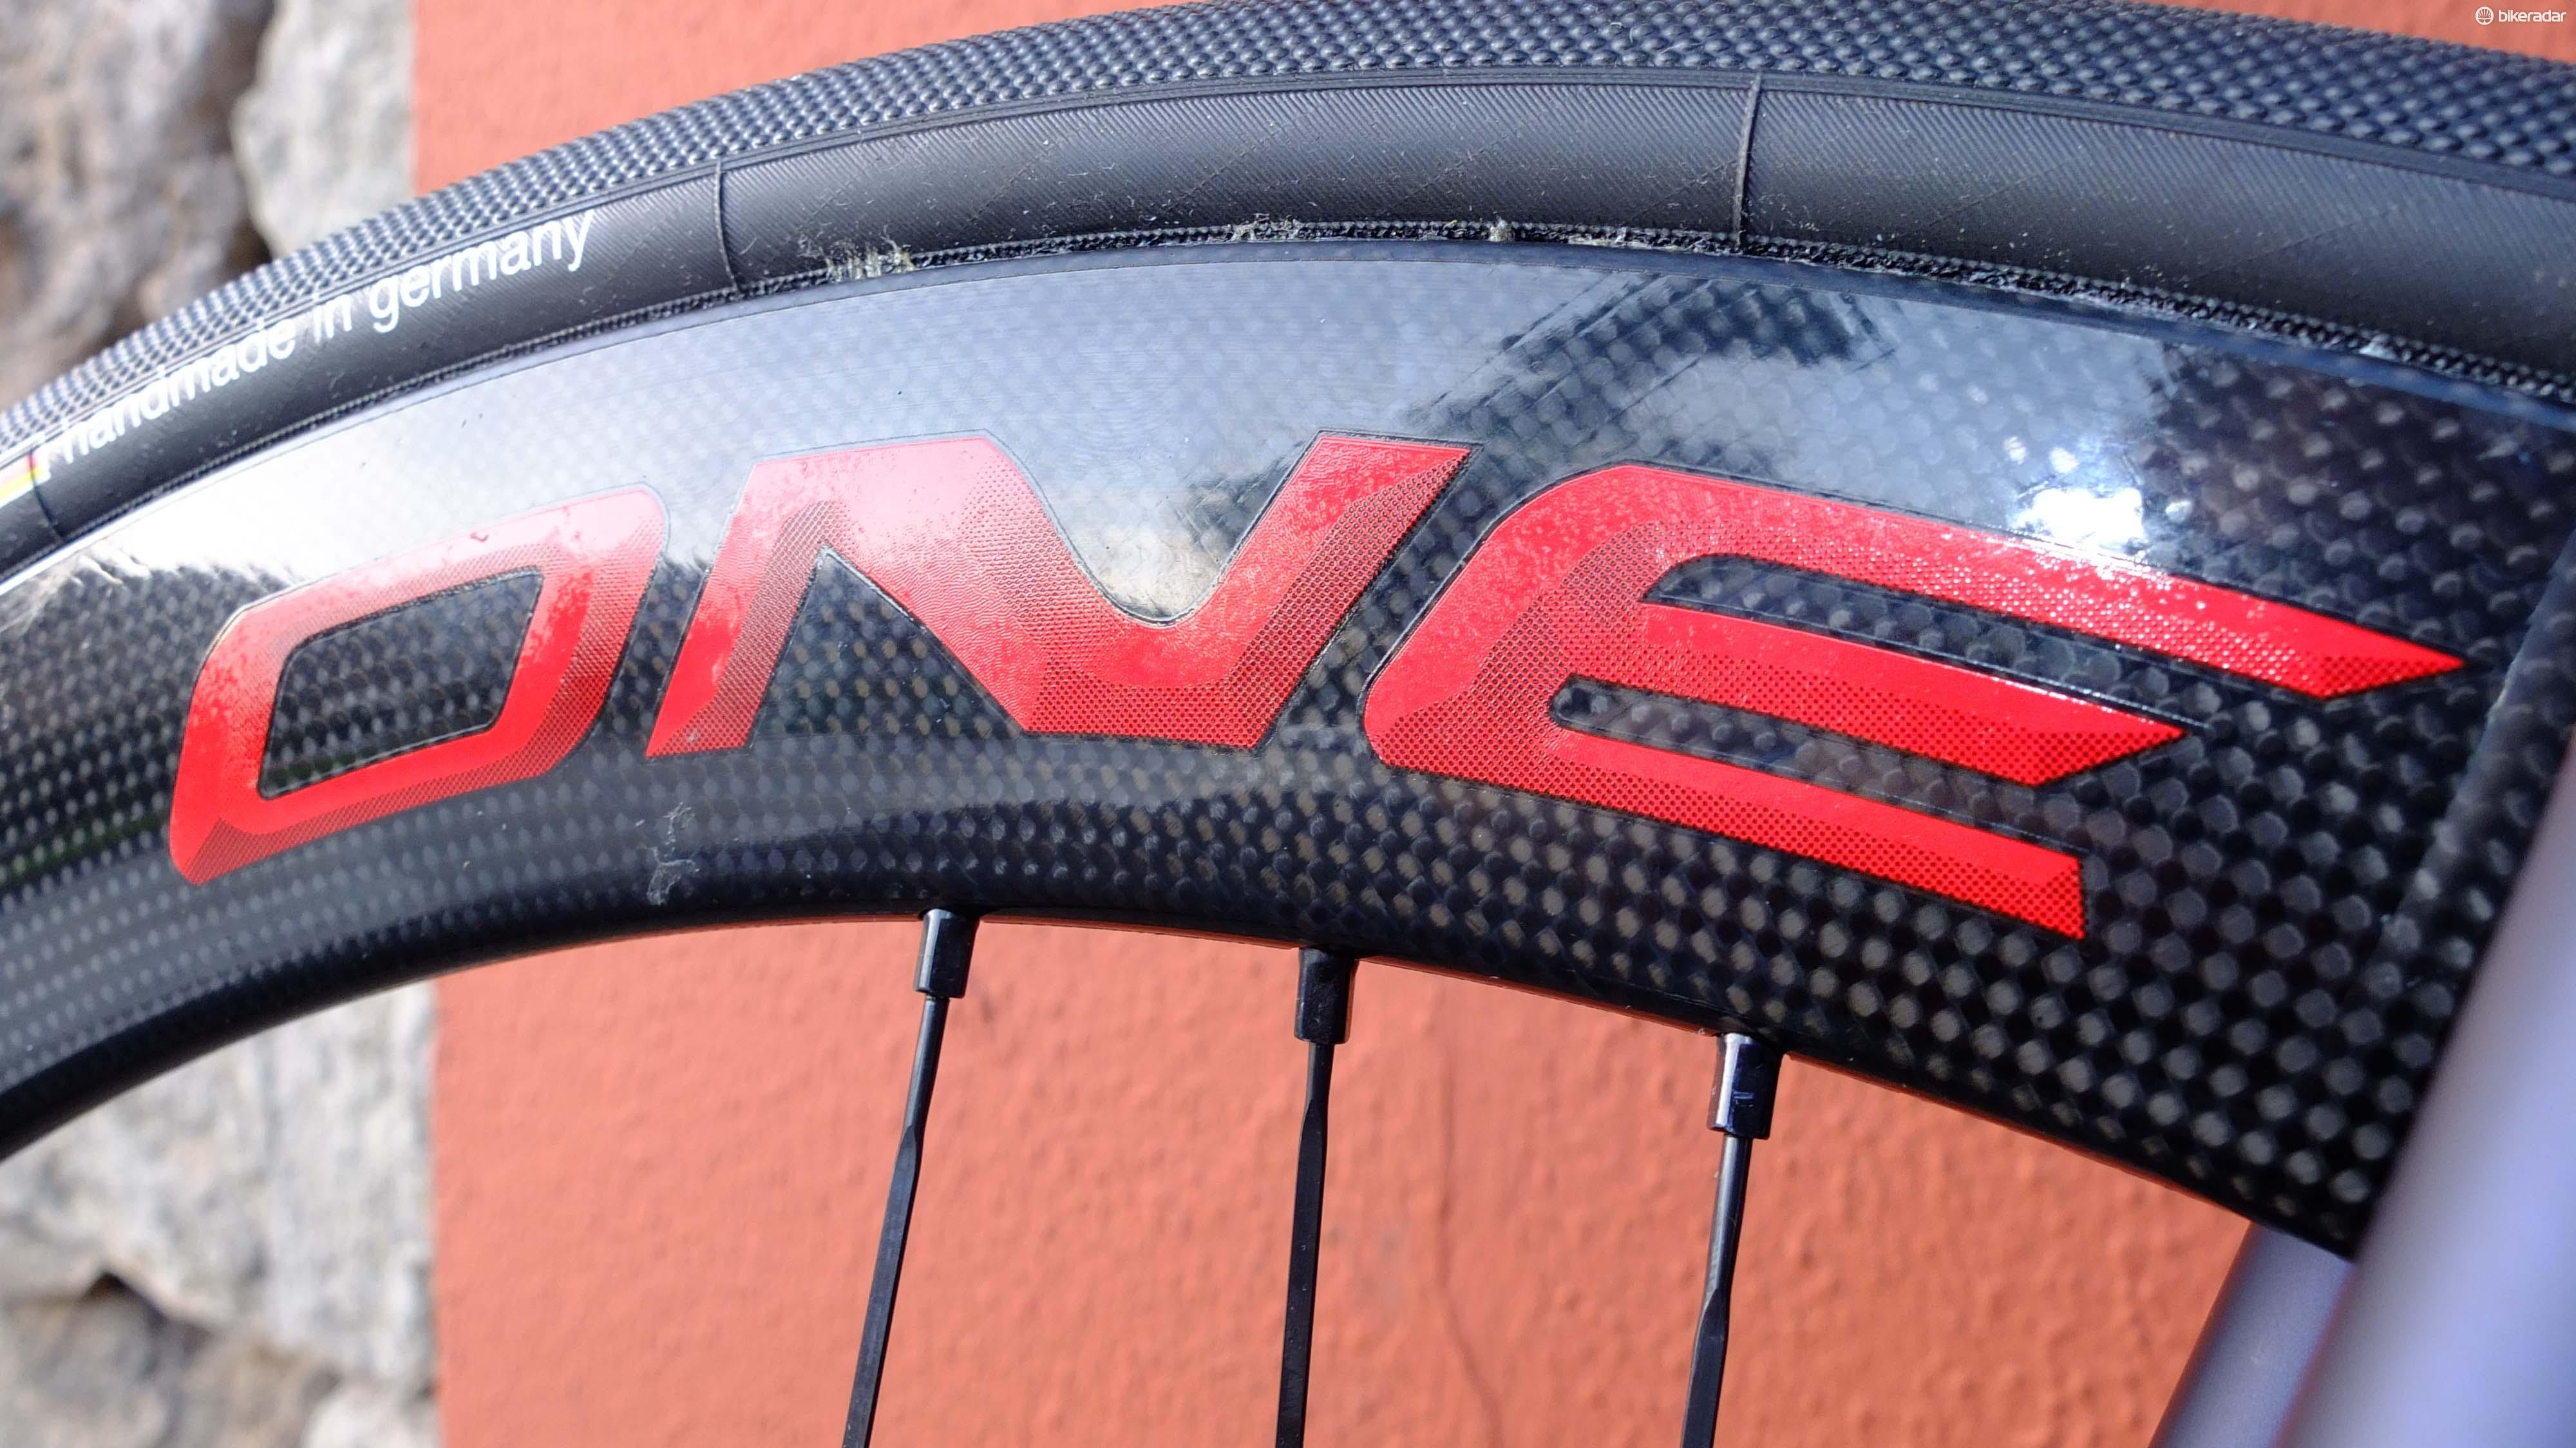 Campagnolo says this smooth, shiny, protective finish is a result of its moulding process